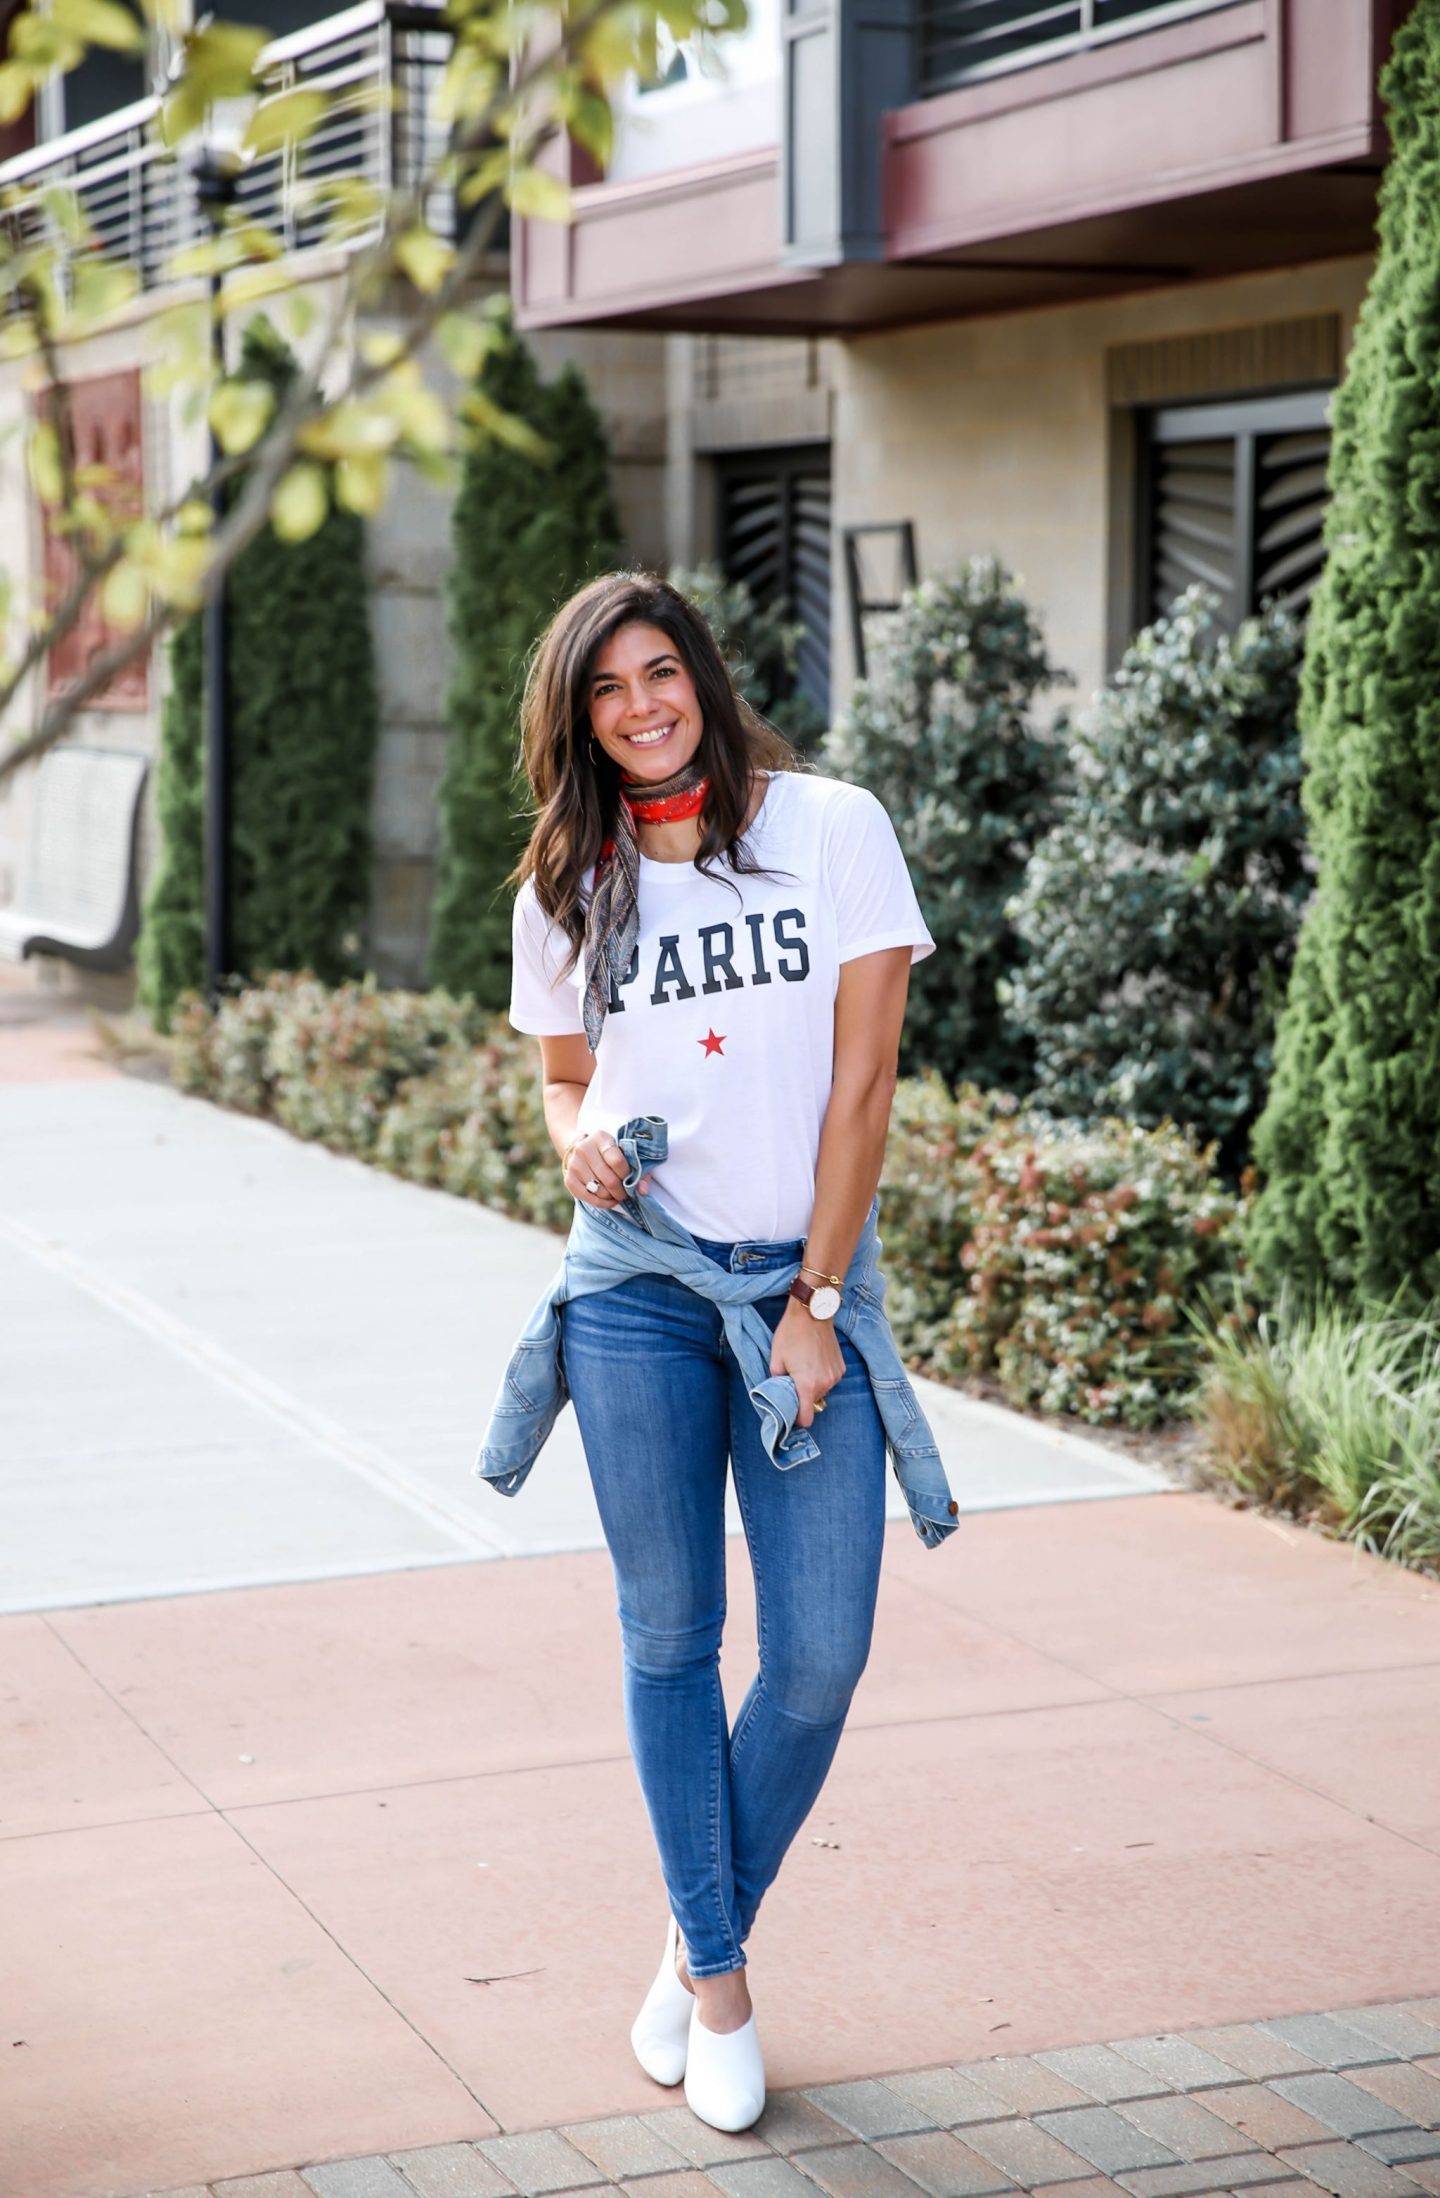 Paris Graphic Tee - Skinny Jeans - White Mules